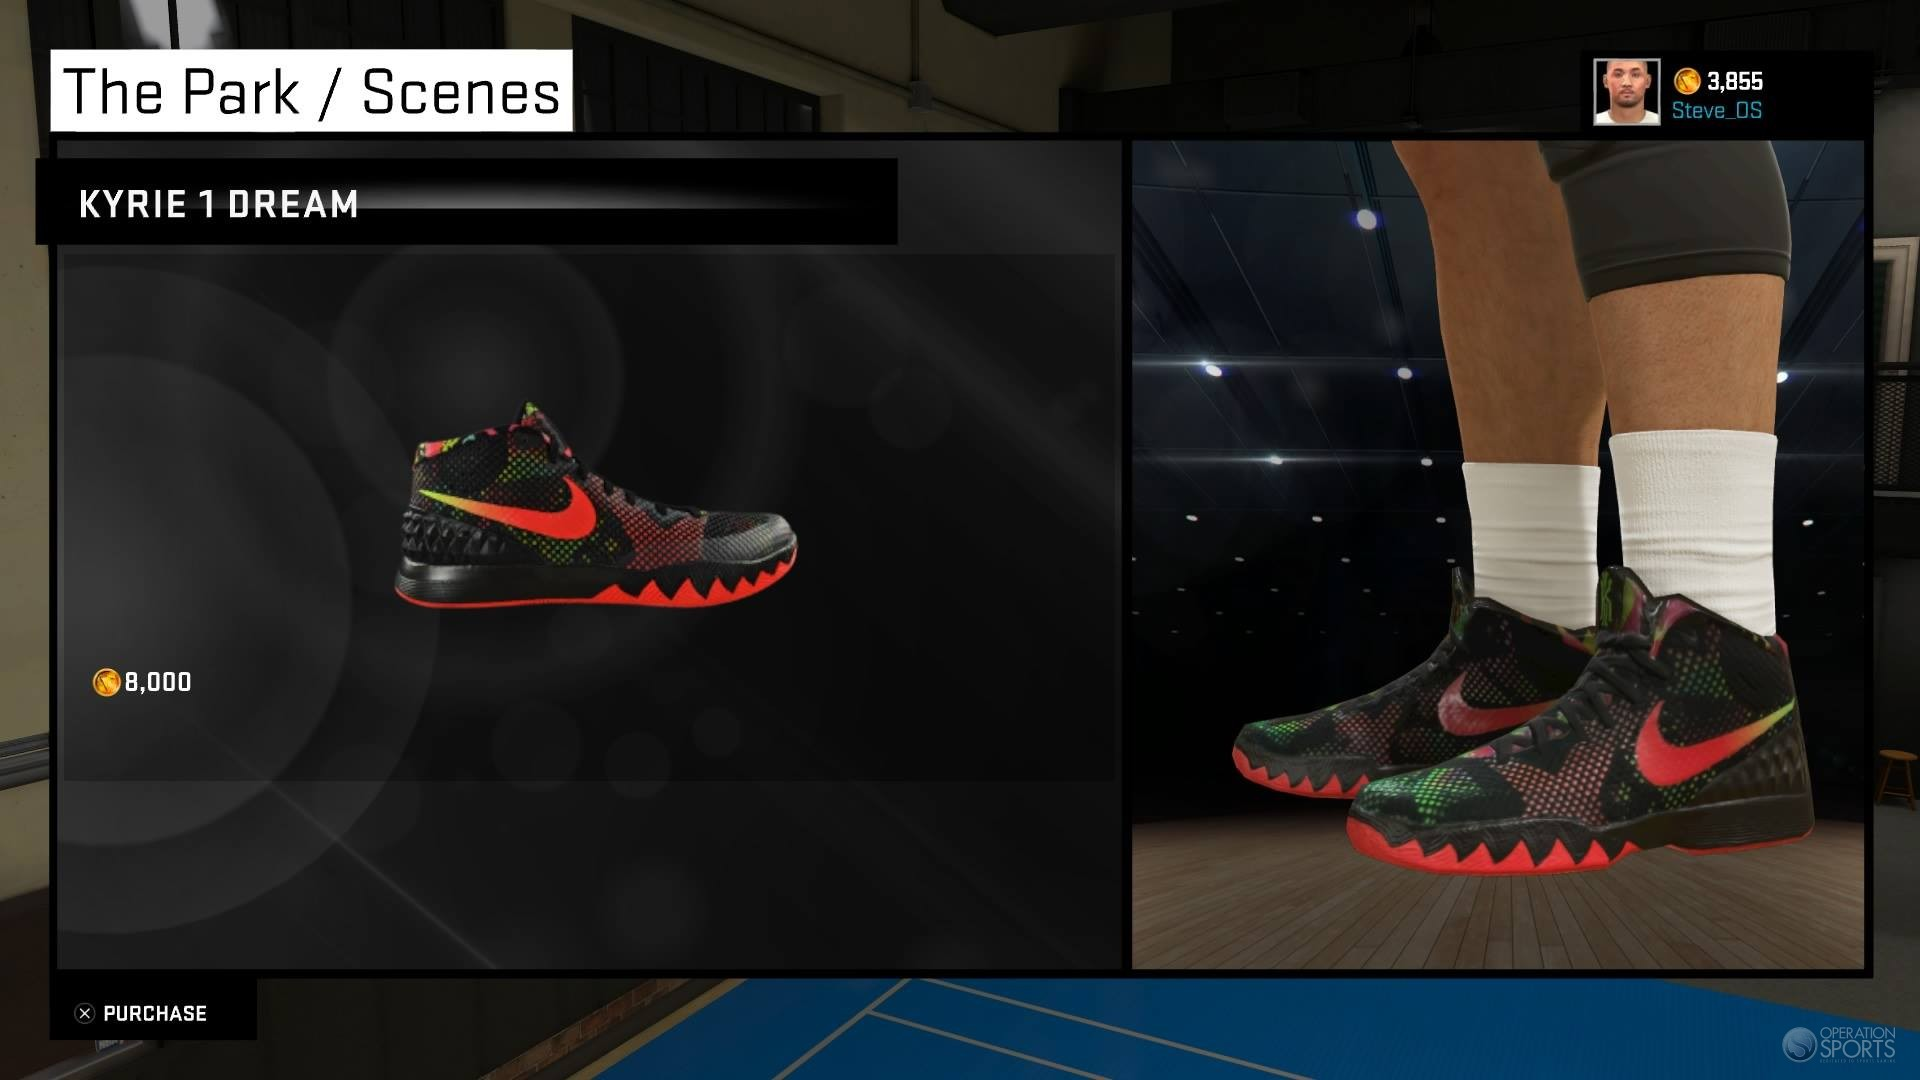 ca4de50cd321 ... shoes 6329d 46c4f new zealand nike kyrie 1 dream available now in nba  2k15 operation sports a3e53 89b79 ...